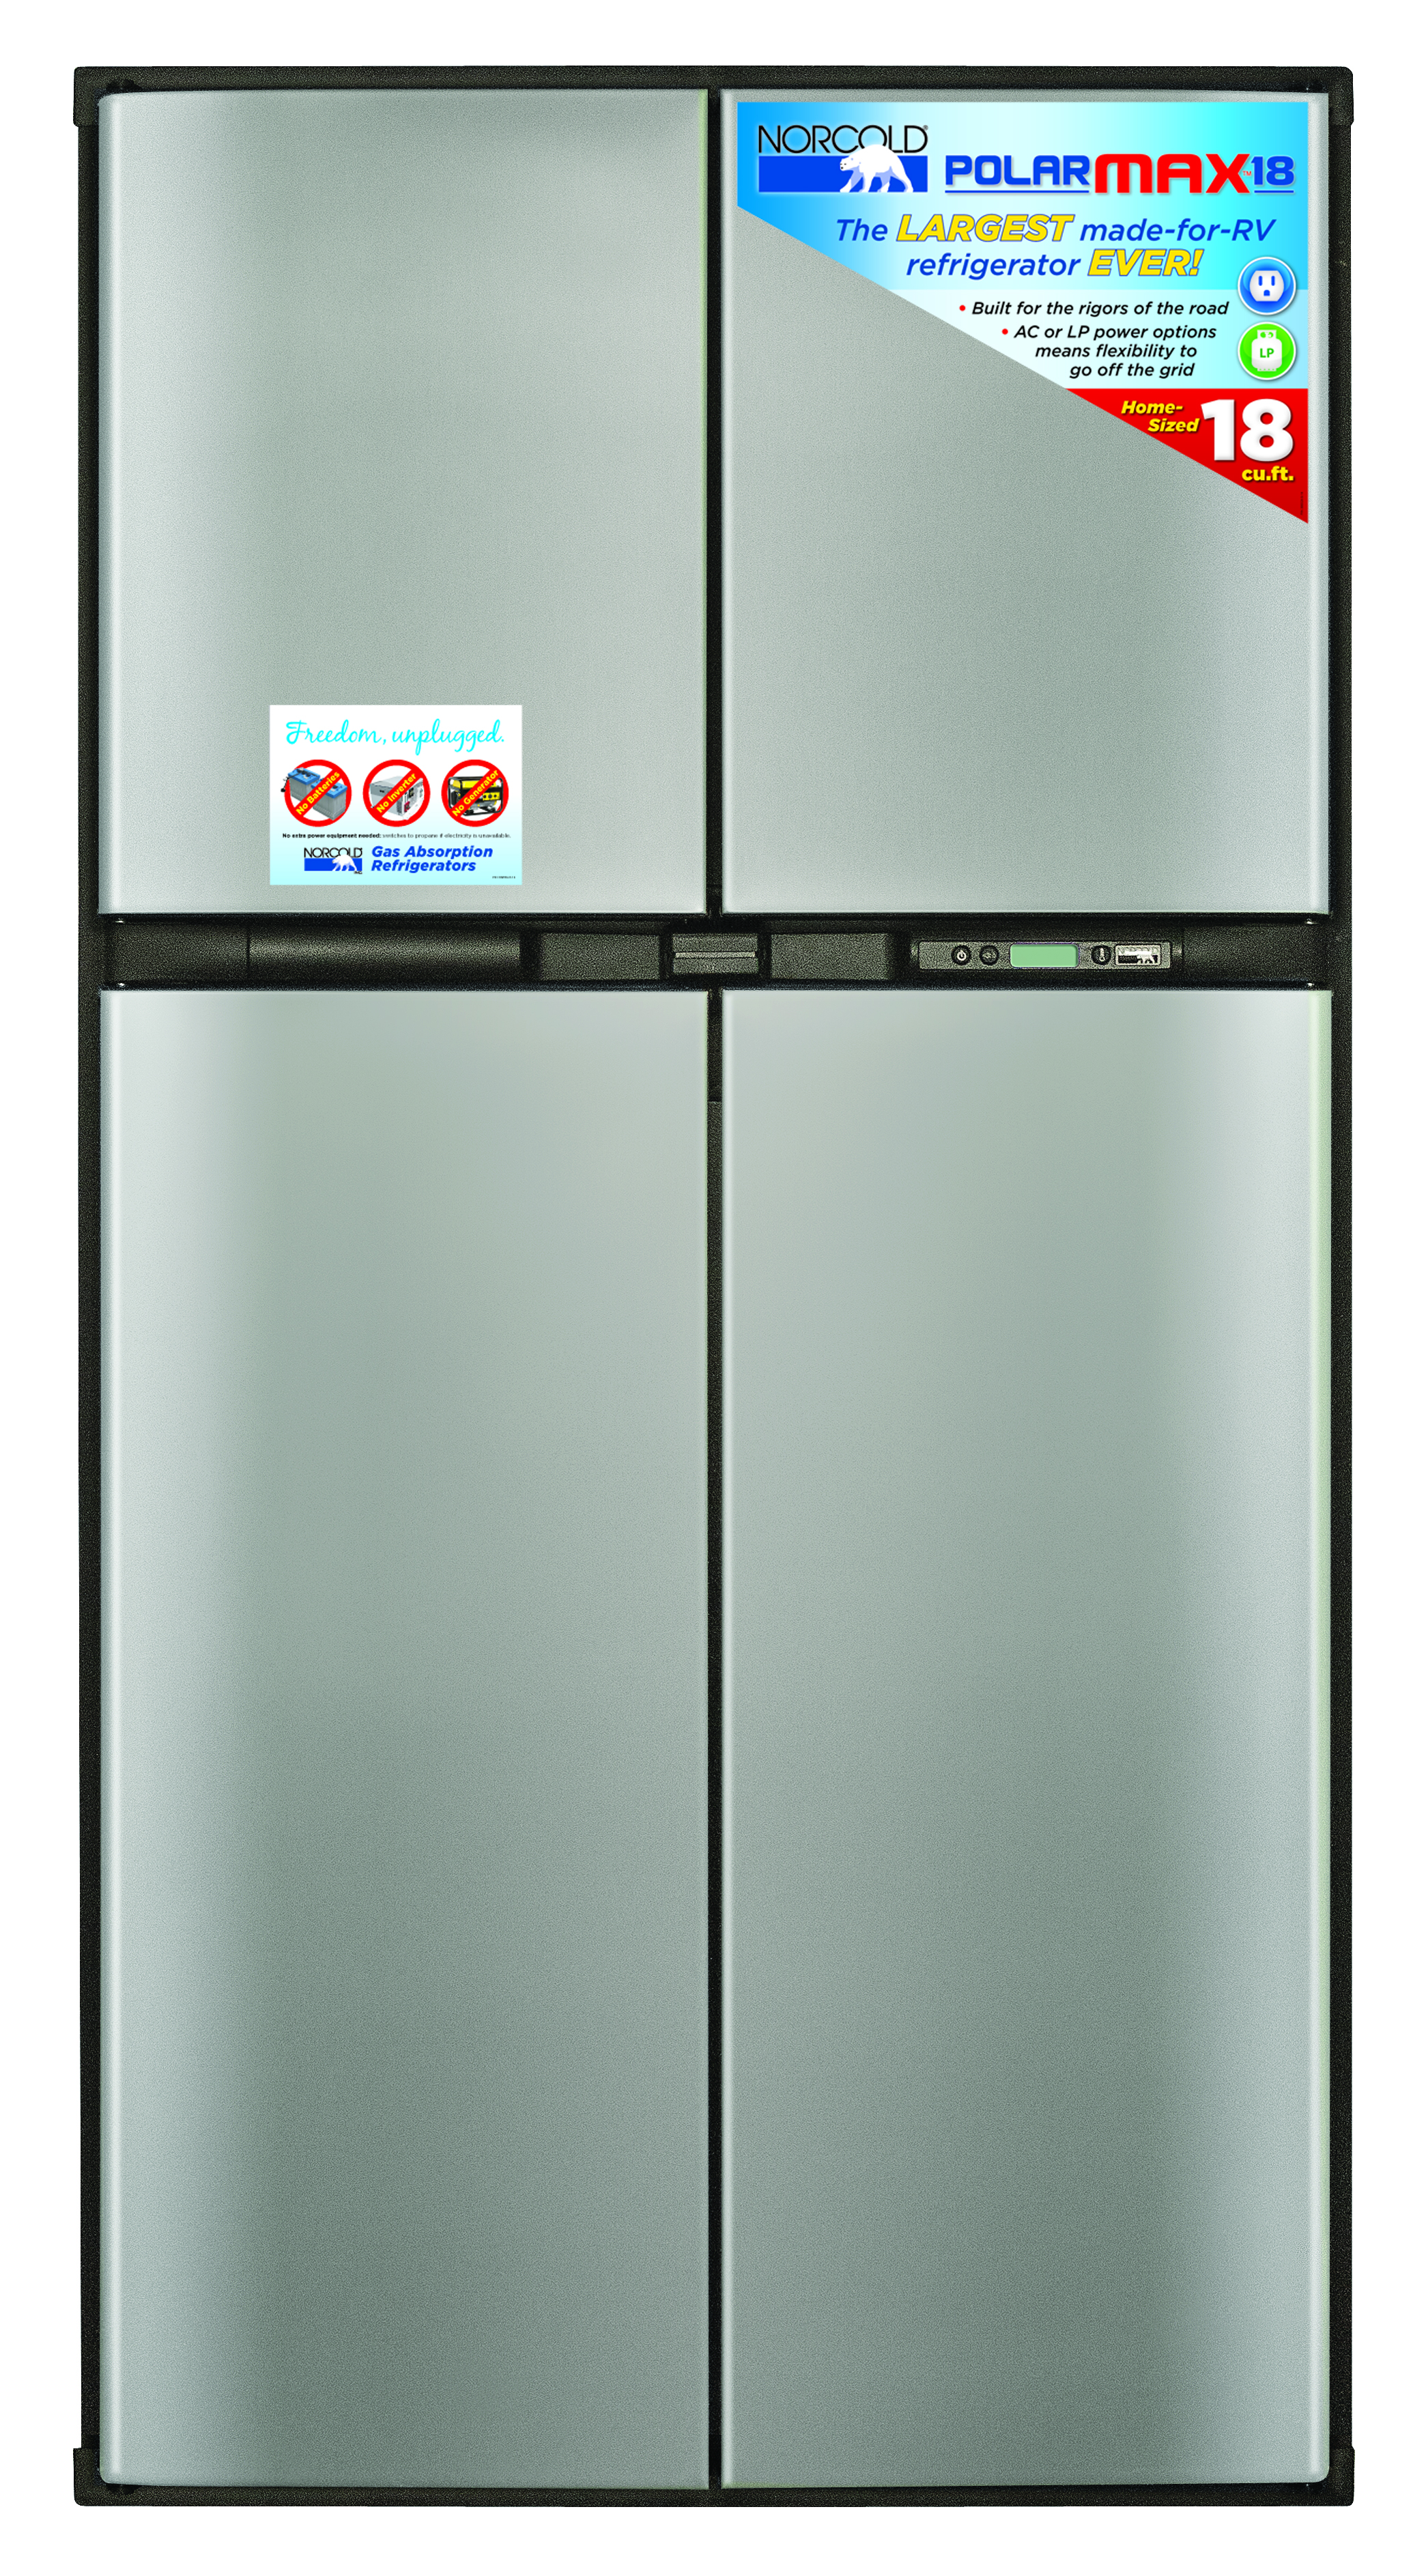 Refrigerator Options